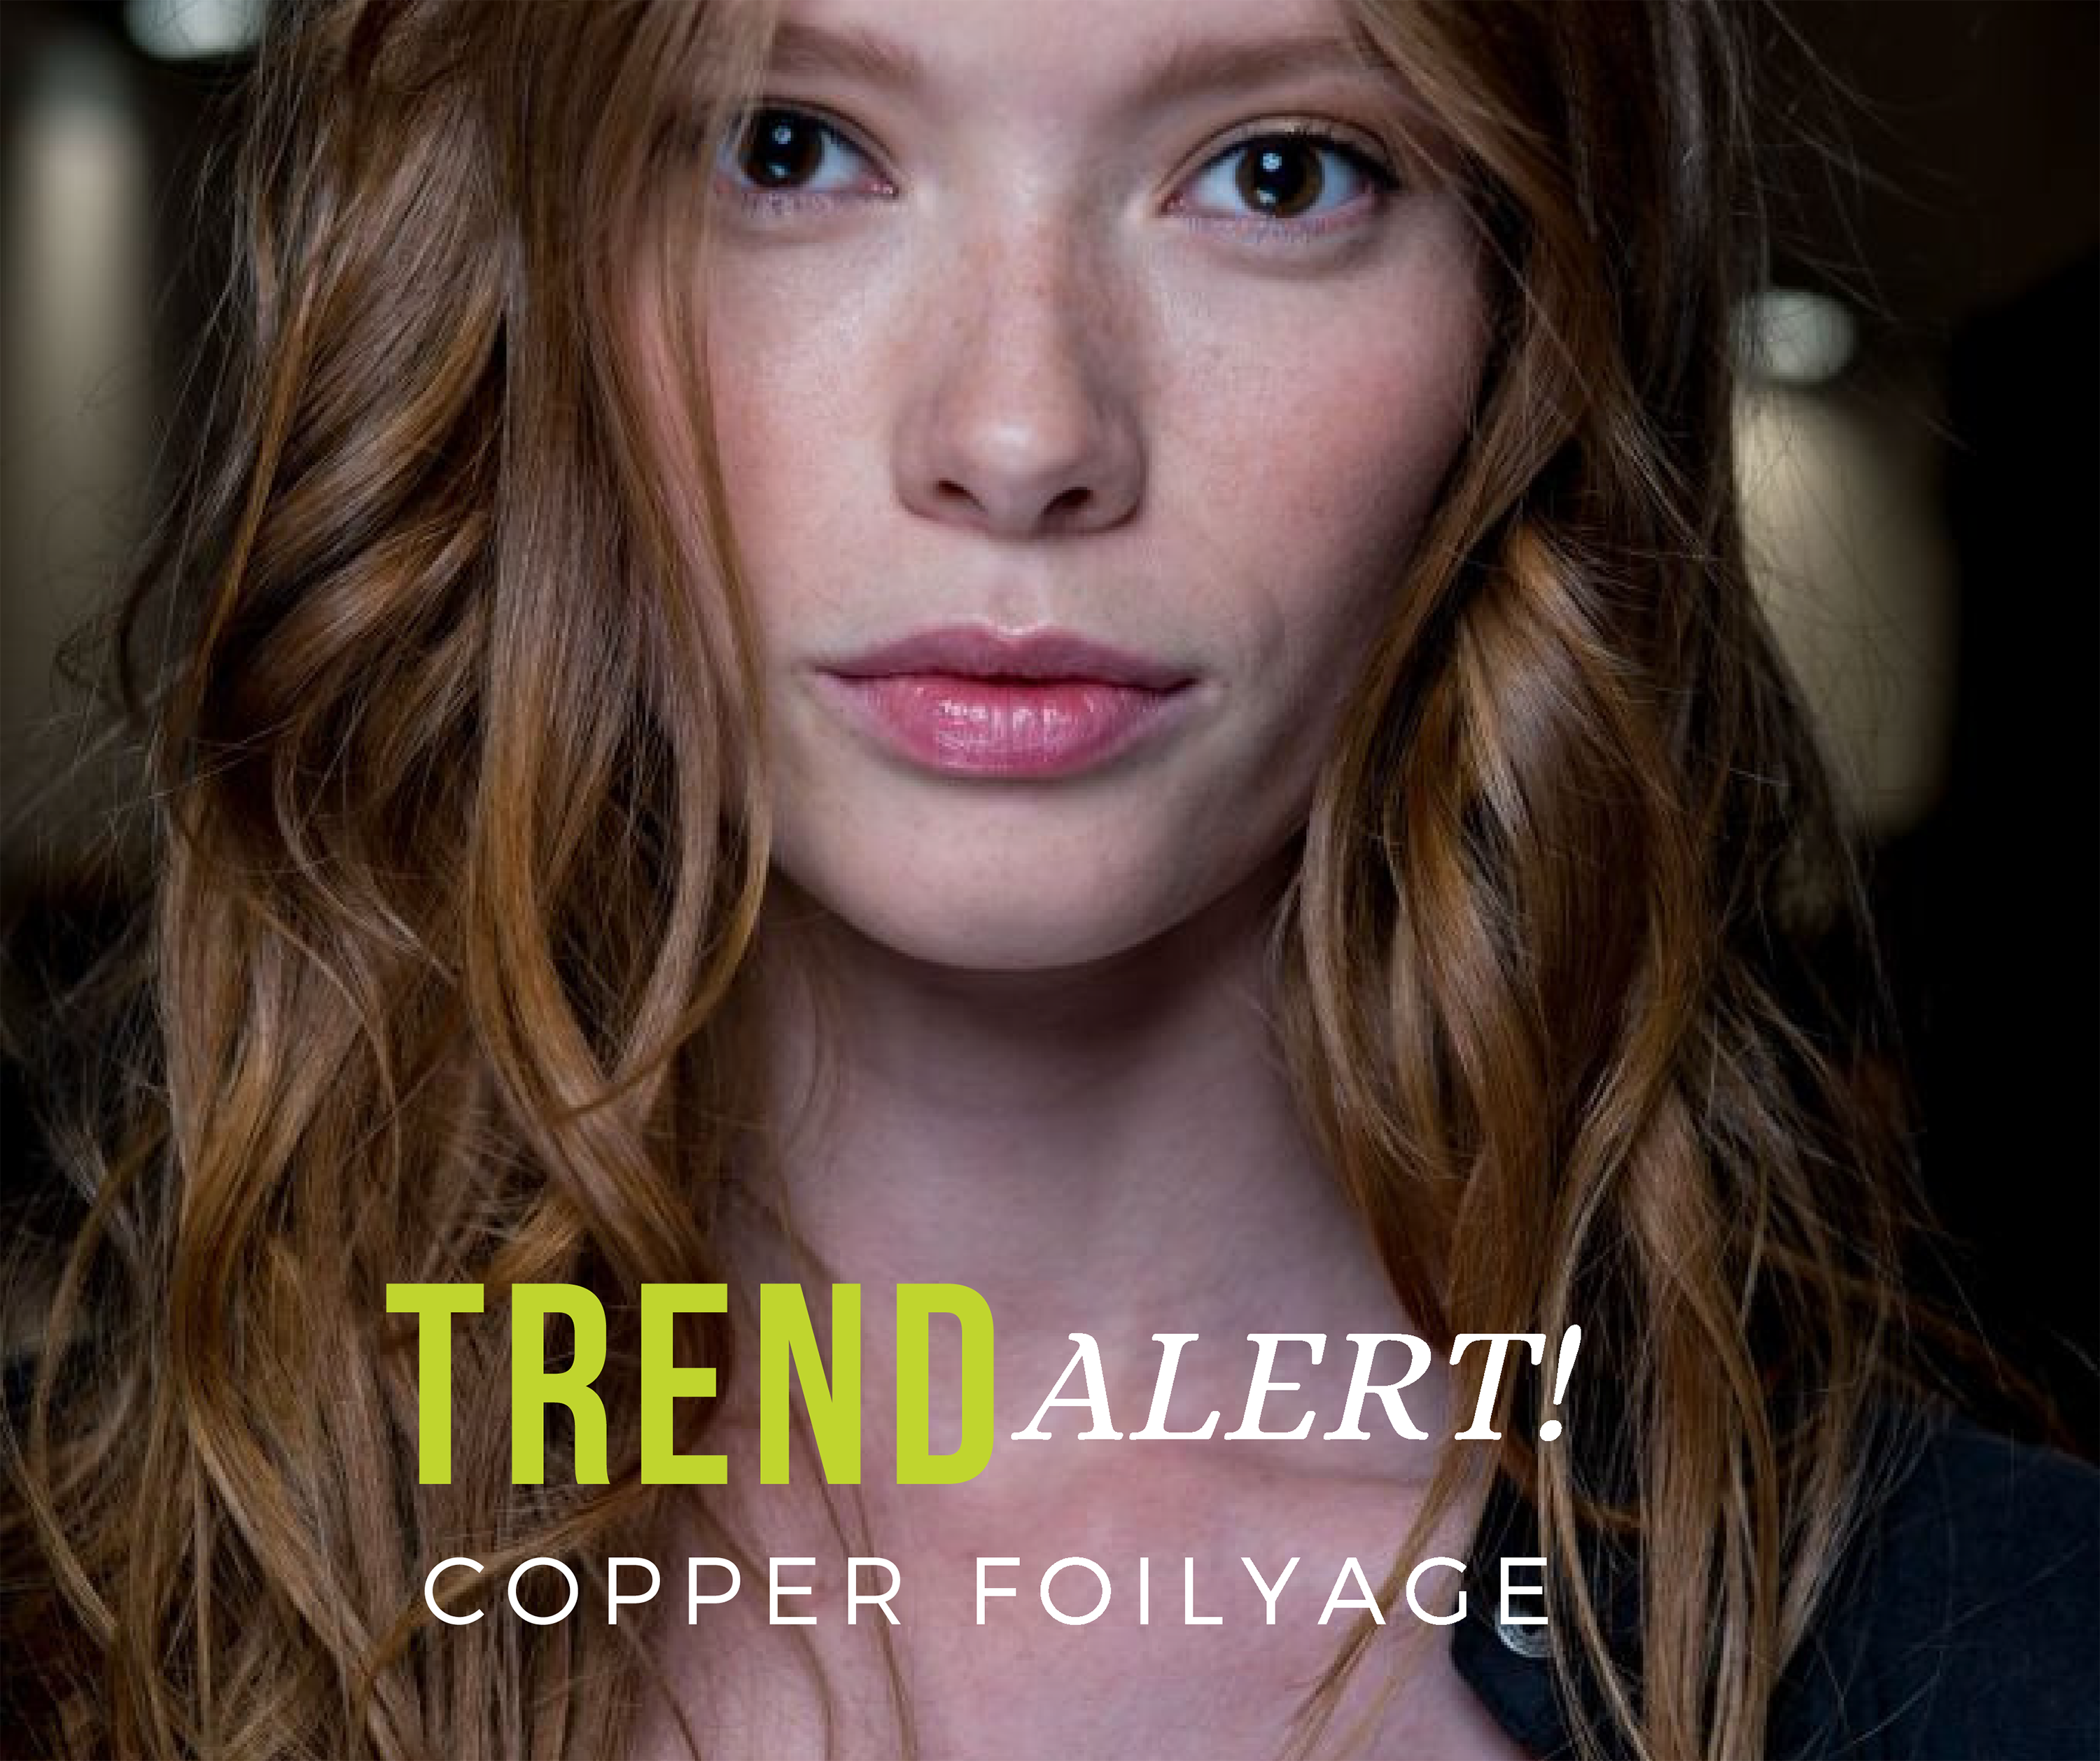 """0c7cad09f """"Foilyage"""" is the latest hair color trend where a balayage effect is  created using foils for a natural sun-kissed finish. The latest version  you'll be ..."""